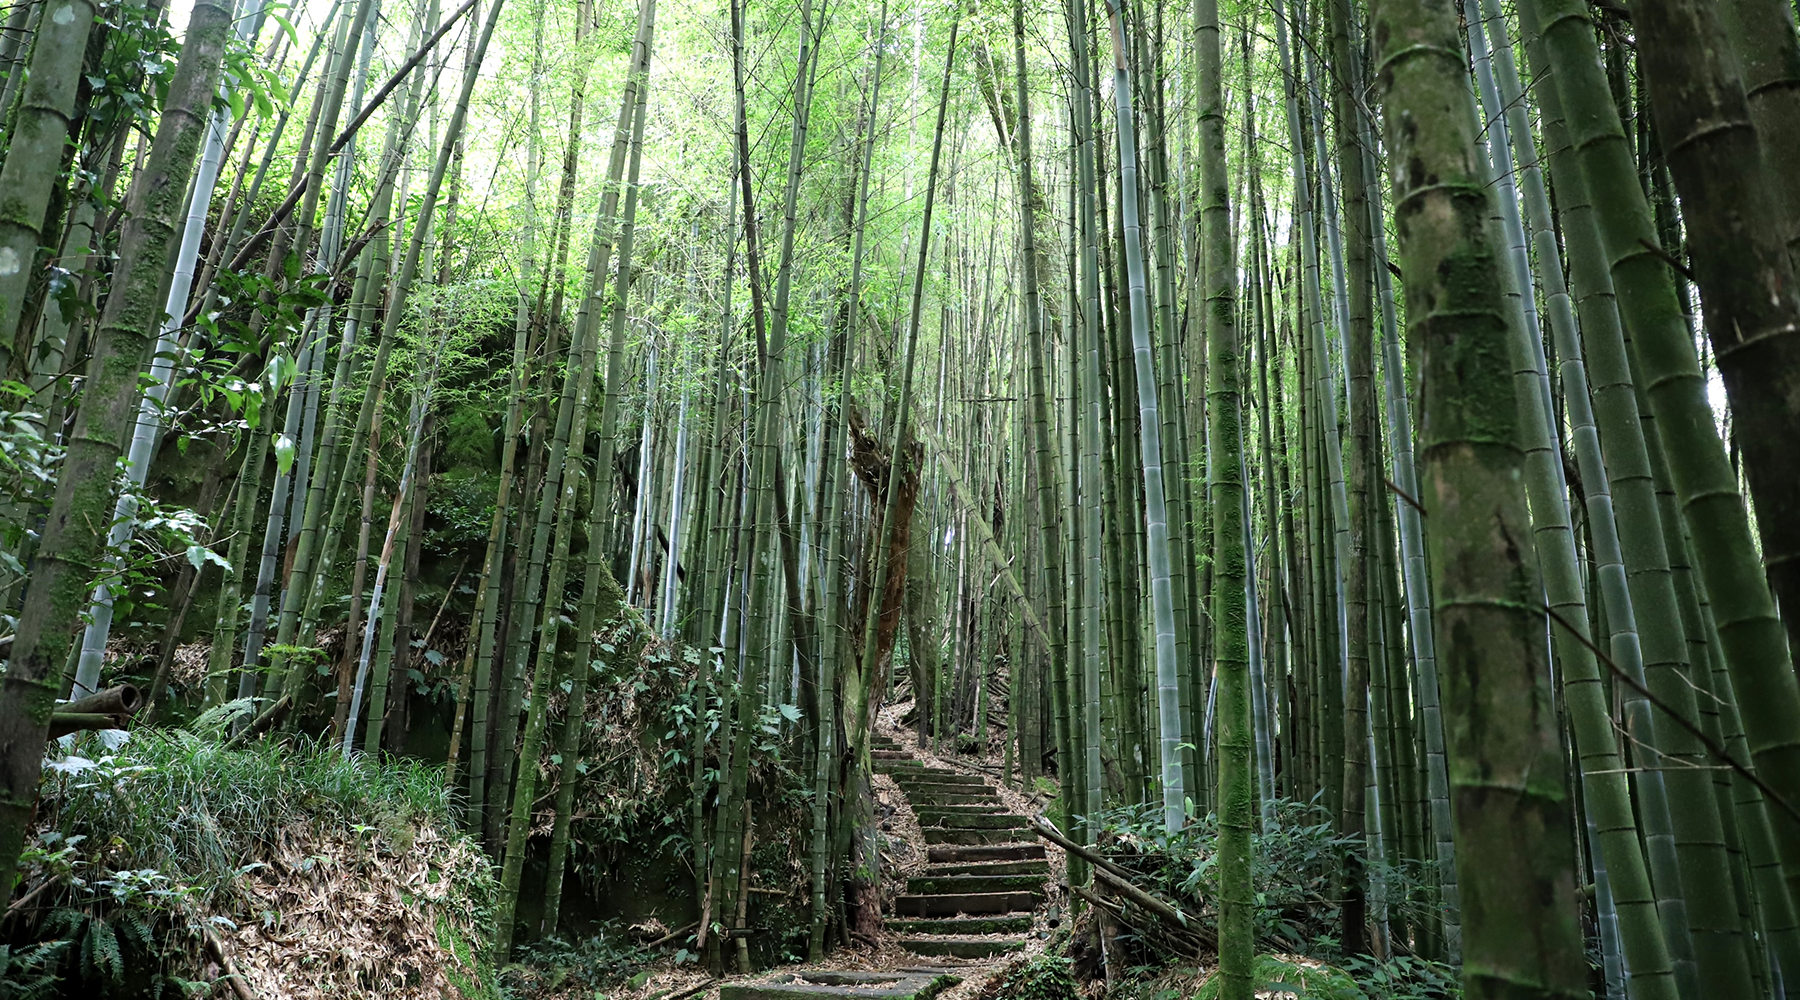 Bamboo forests efficiently sequester carbon